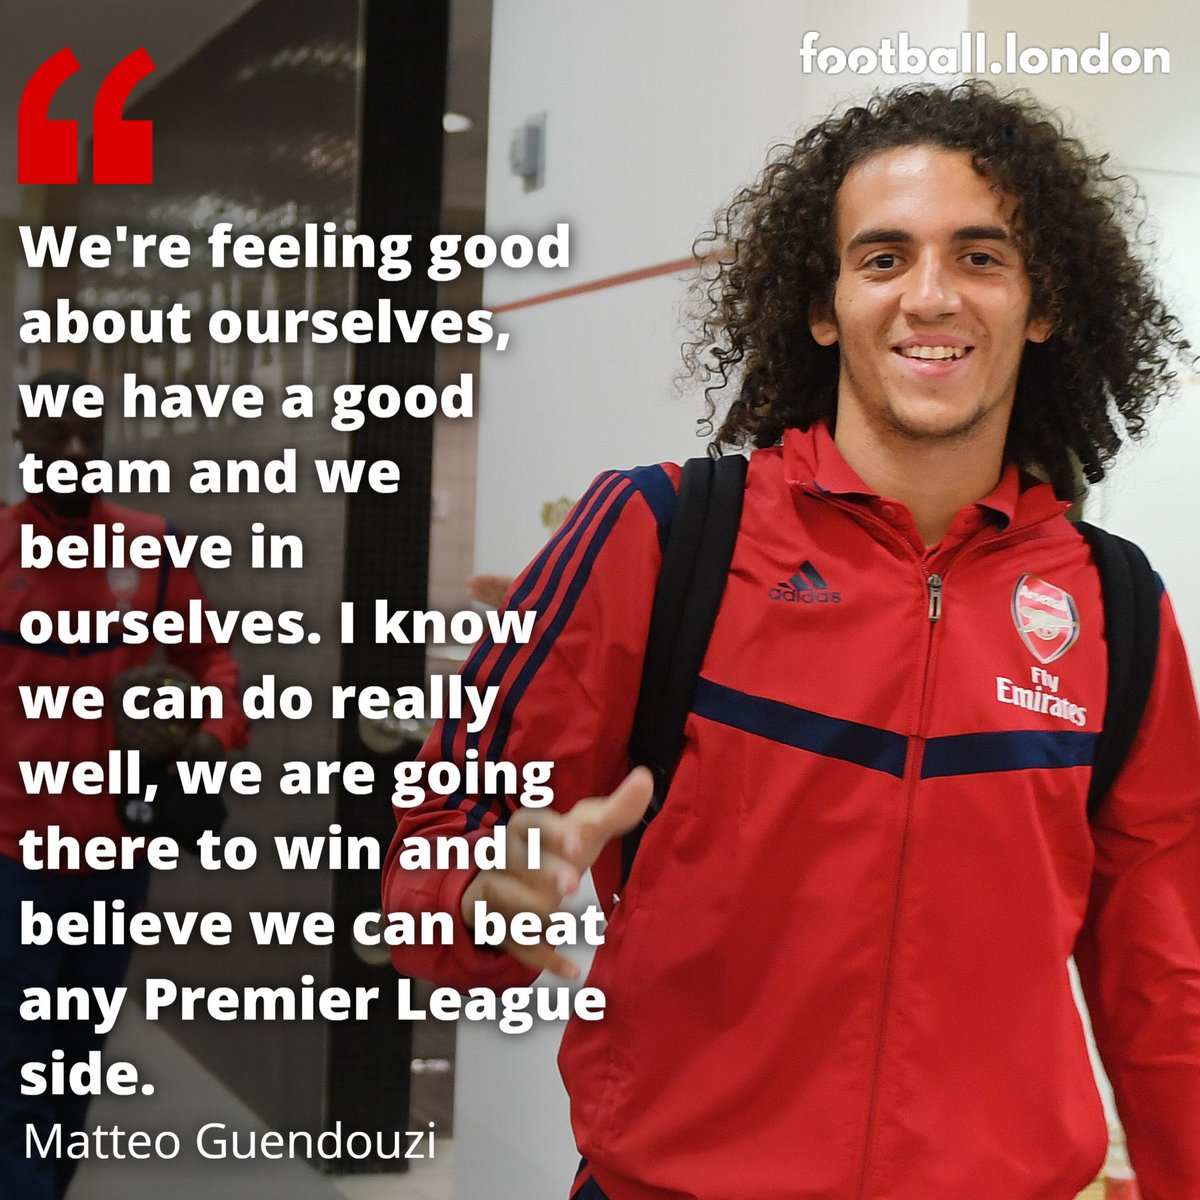 Matteo Guendouzi is confident for this weekend and Arsenal's chances throughout the season  <br>http://pic.twitter.com/bAXYyQwuZl